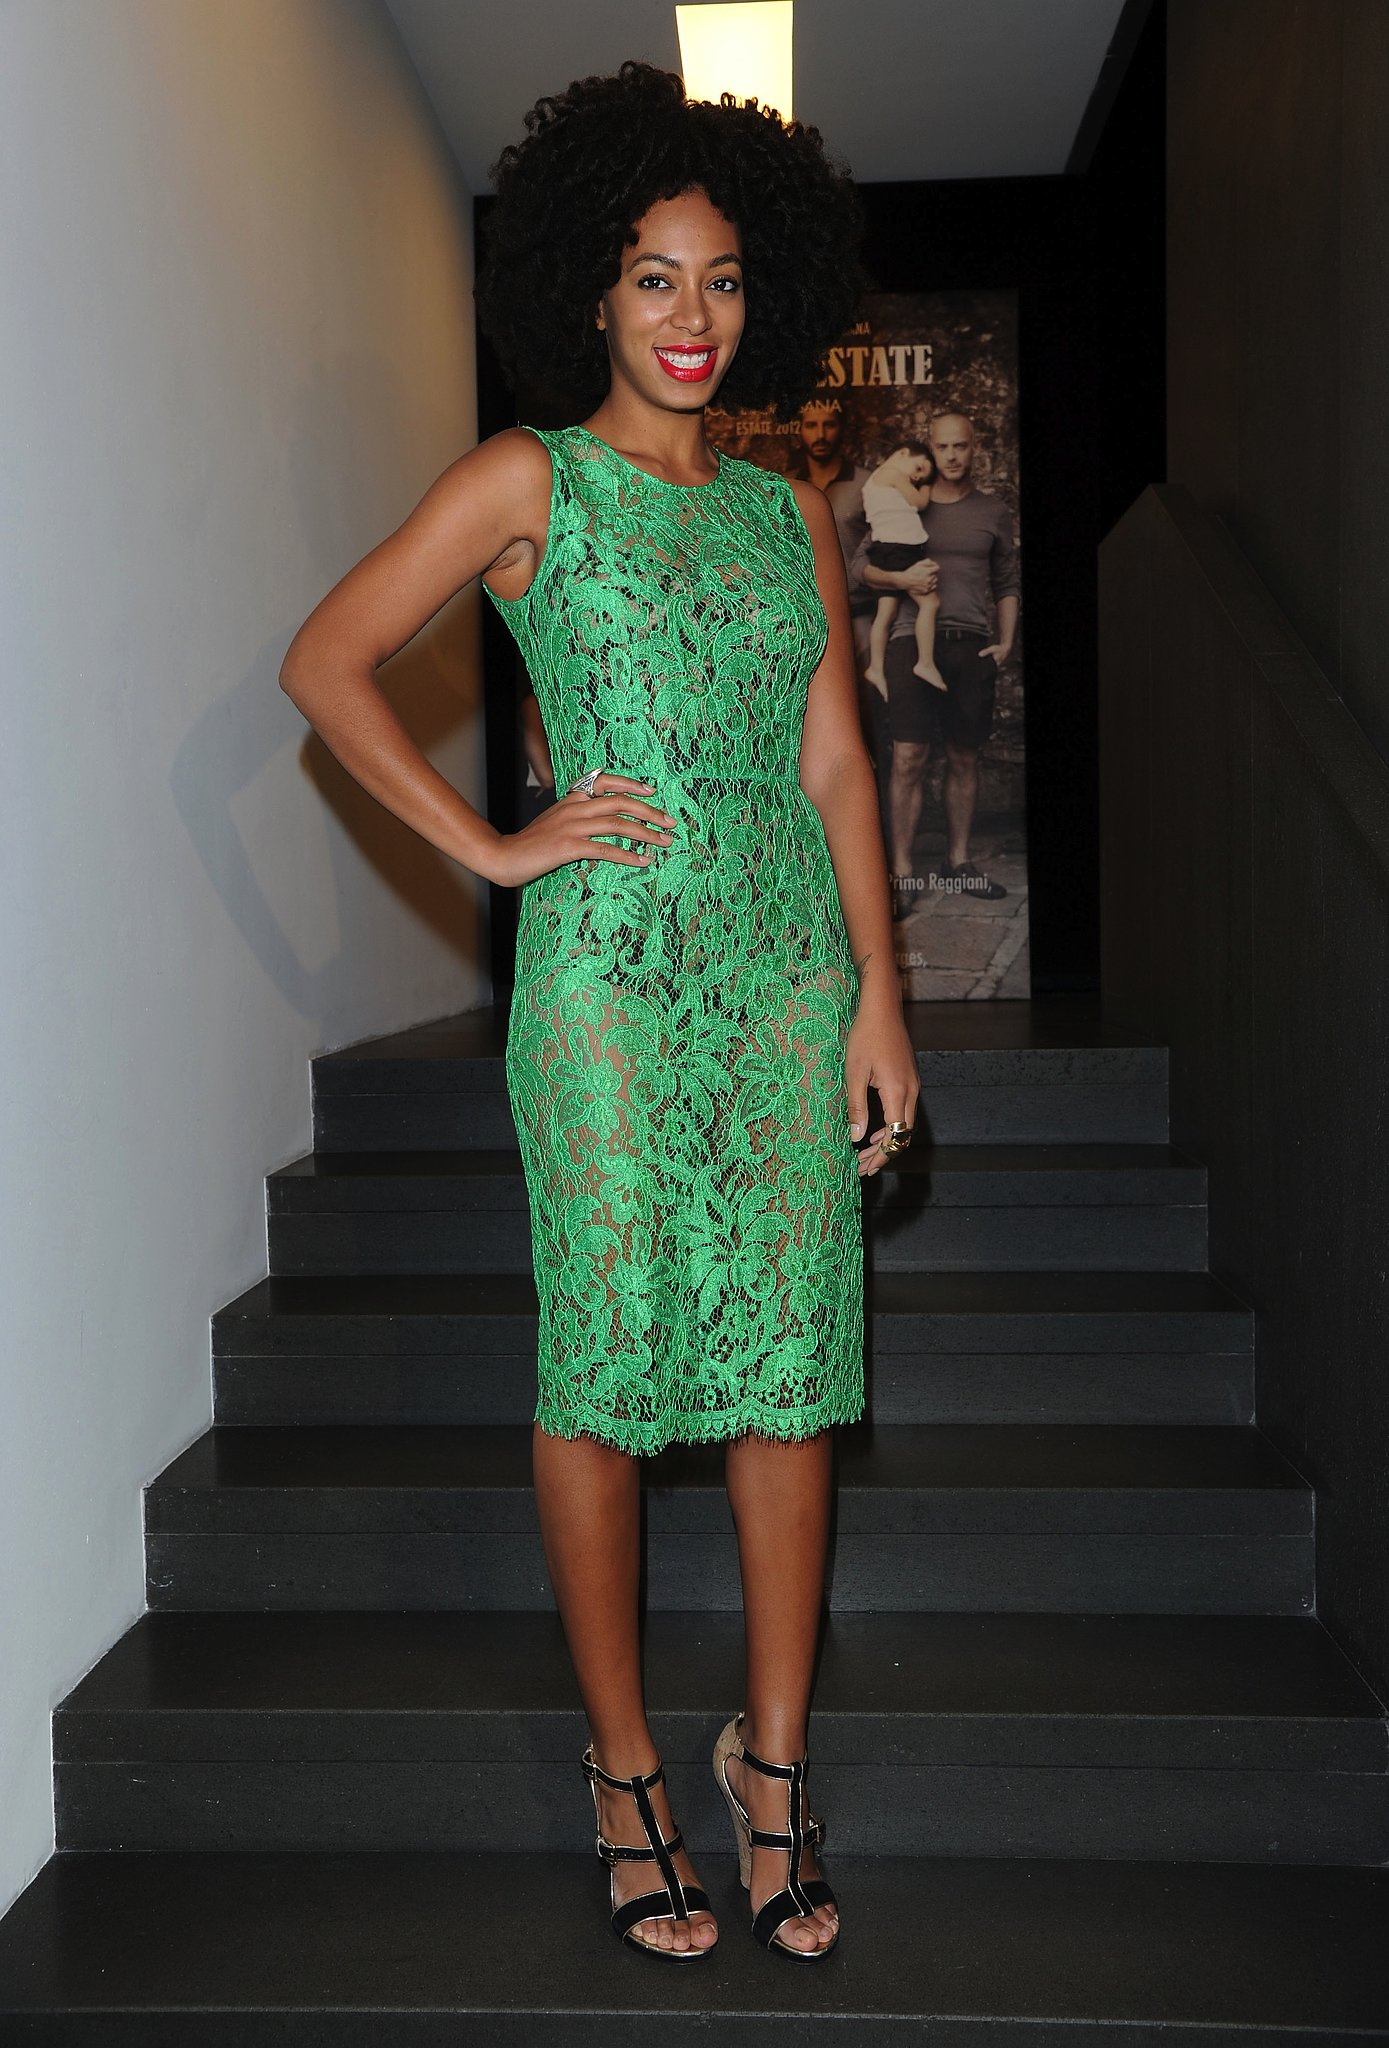 Knowles had us green with envy donning a brilliant lace sheath over a printed bodysuit with gold-trim wedges for a Dolce & Gabbana launch party in 2012.